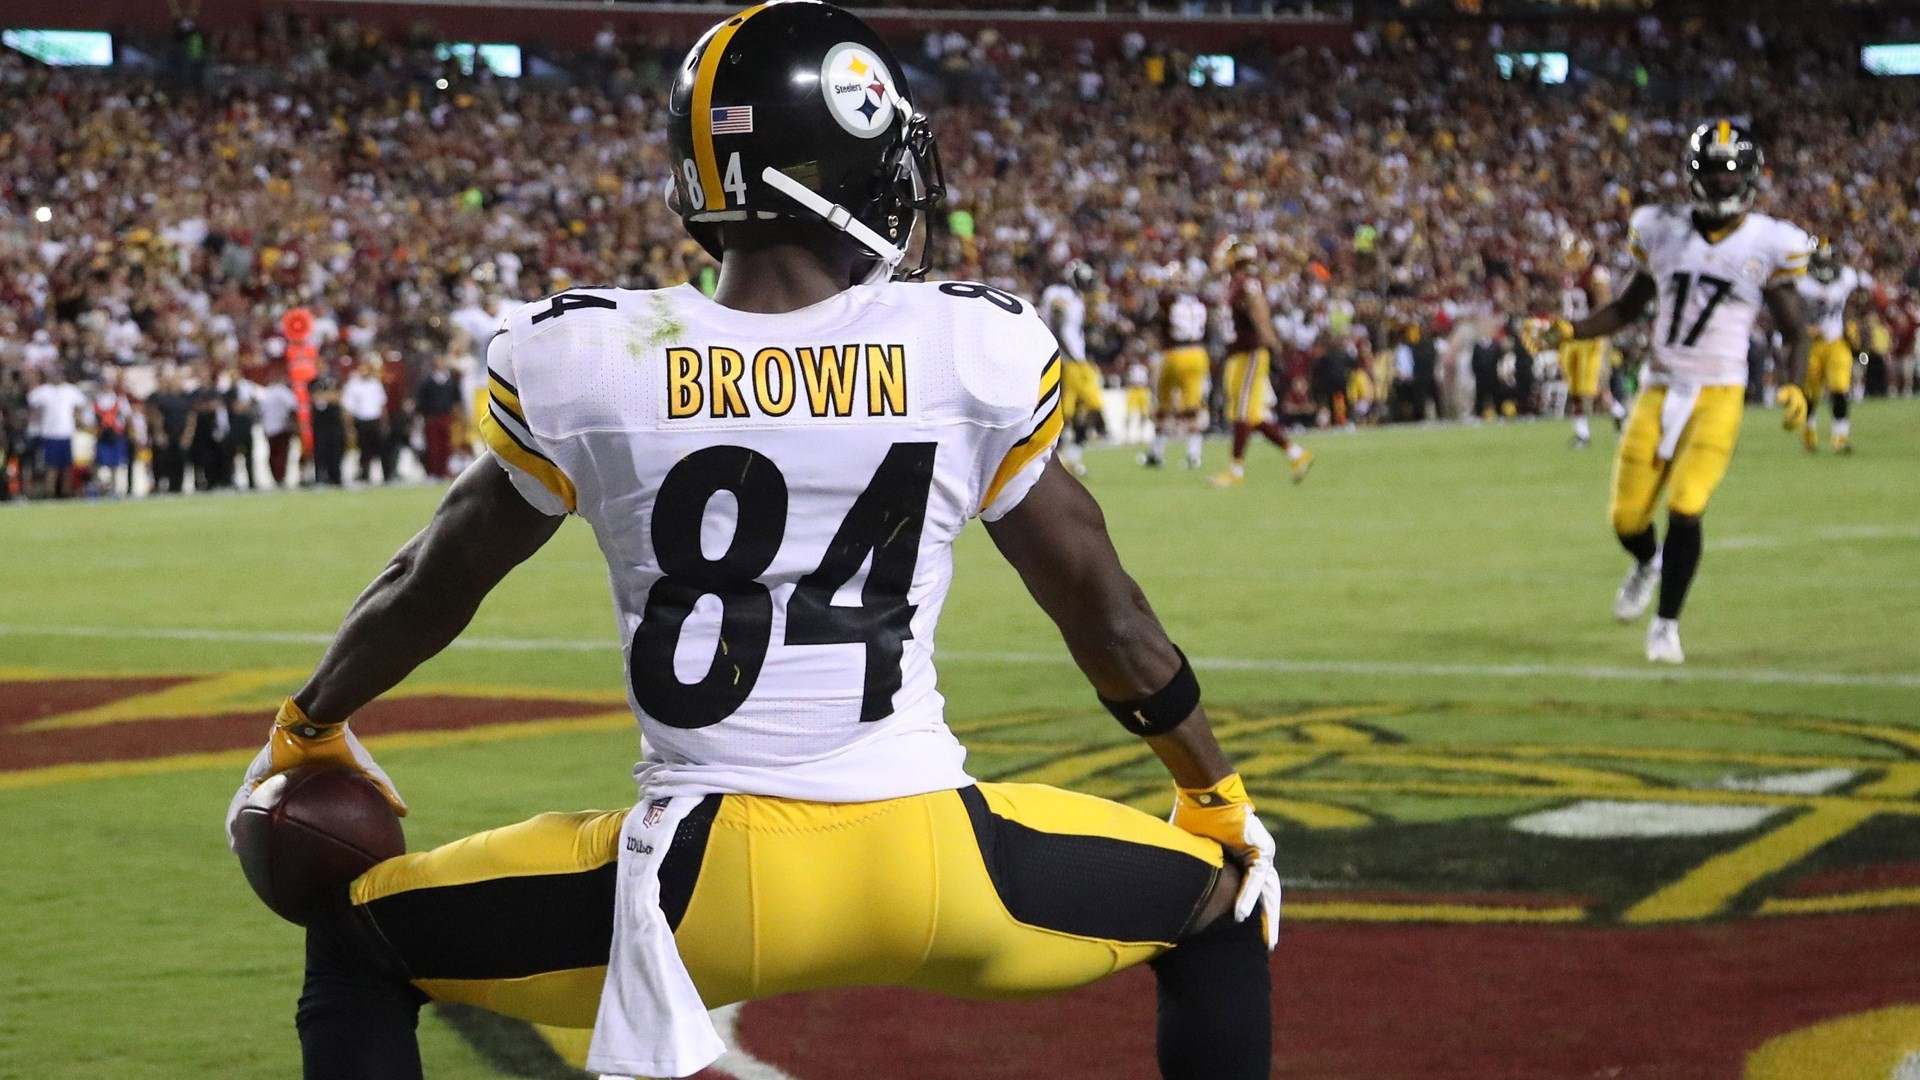 px Pictures for Desktop: pittsburgh steelers pic by Baby Round  for – TrunkWeed.com